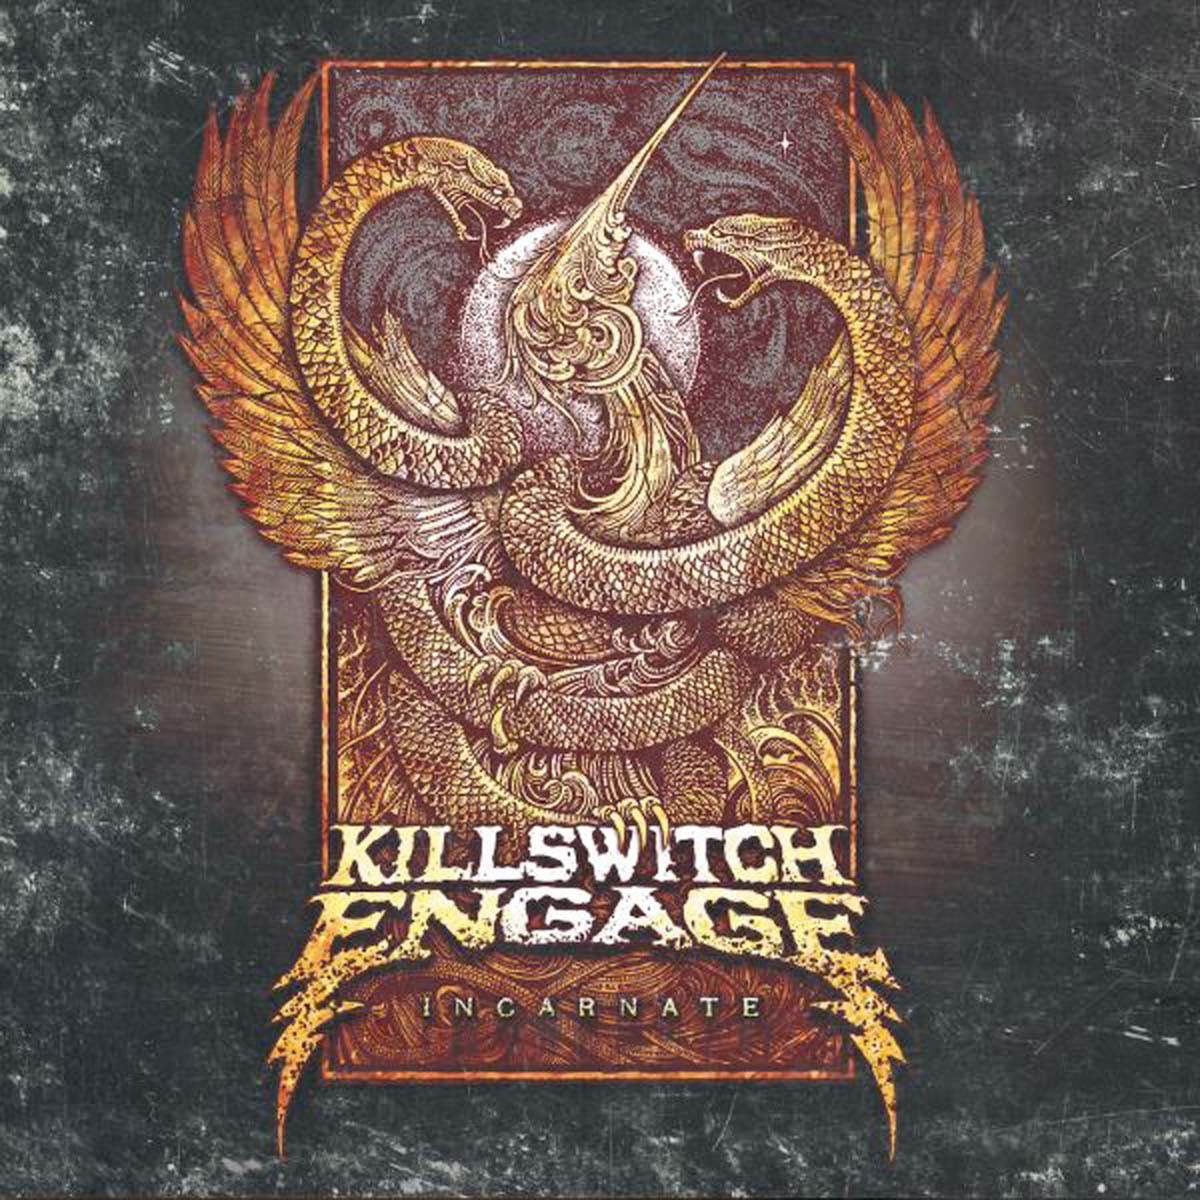 Killswitch Engage - Incarnate